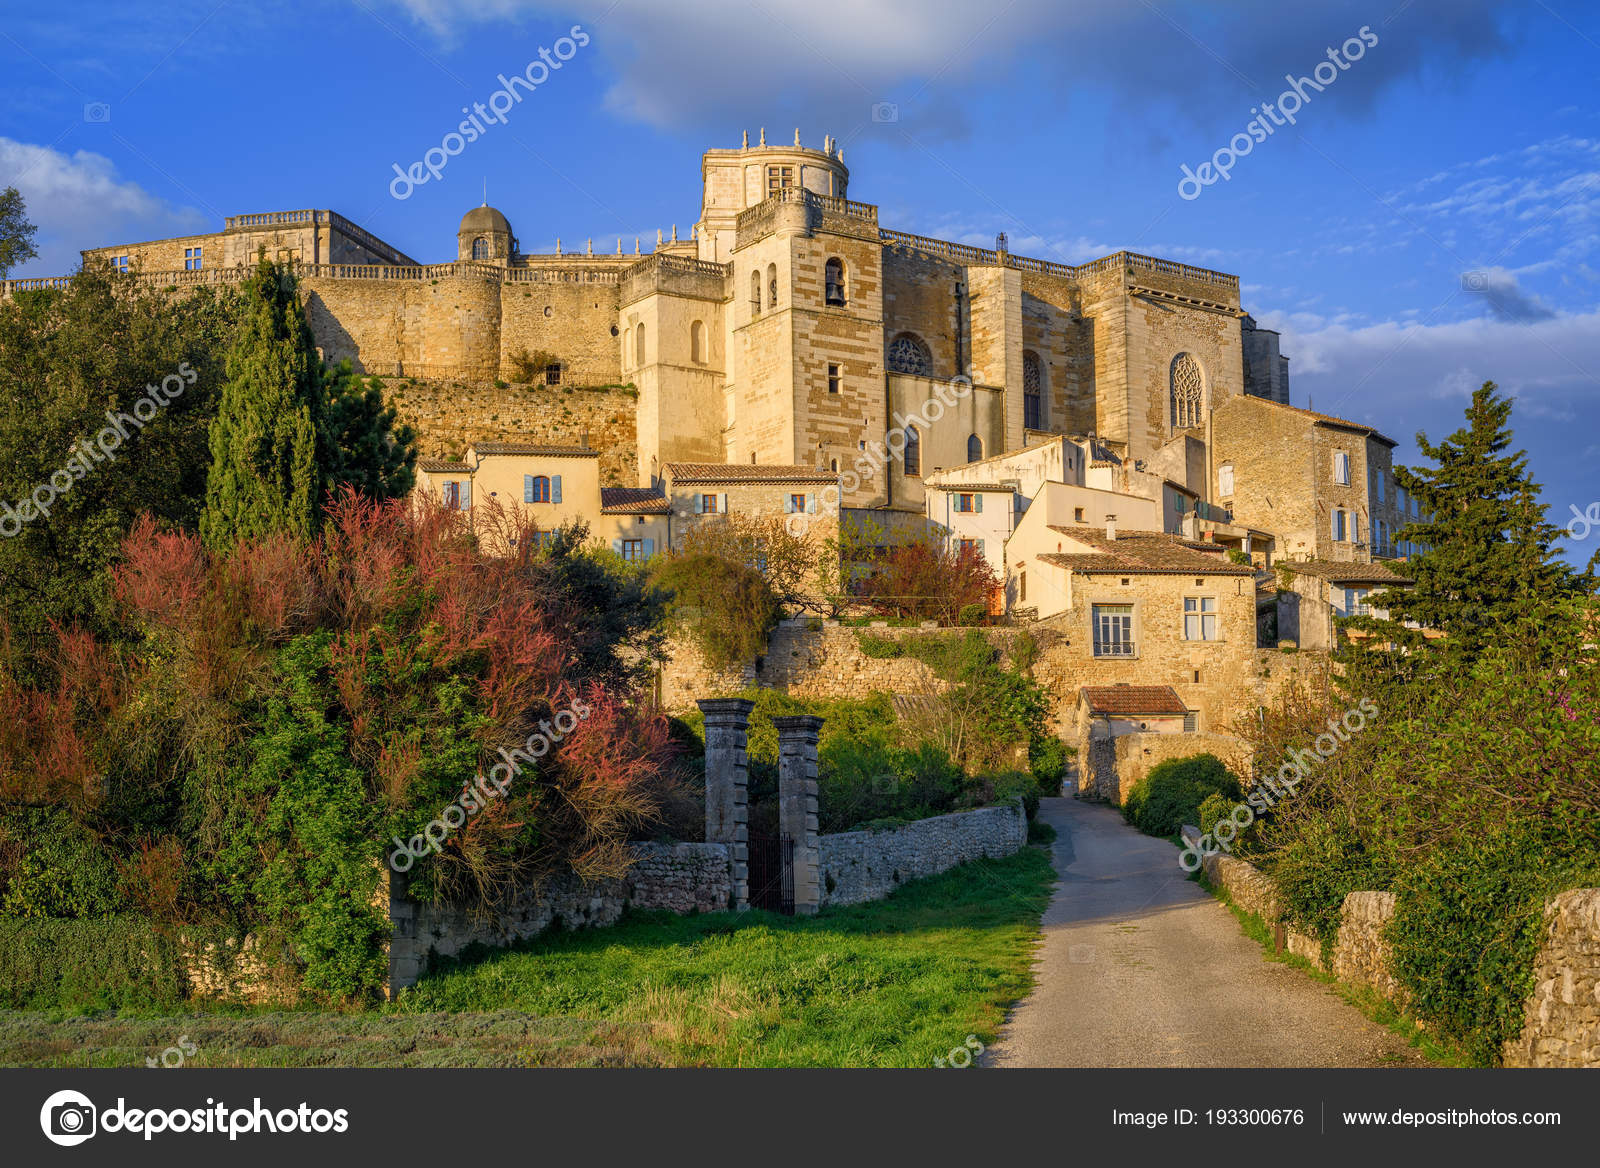 Check out these popular cities in Drôme Provençale